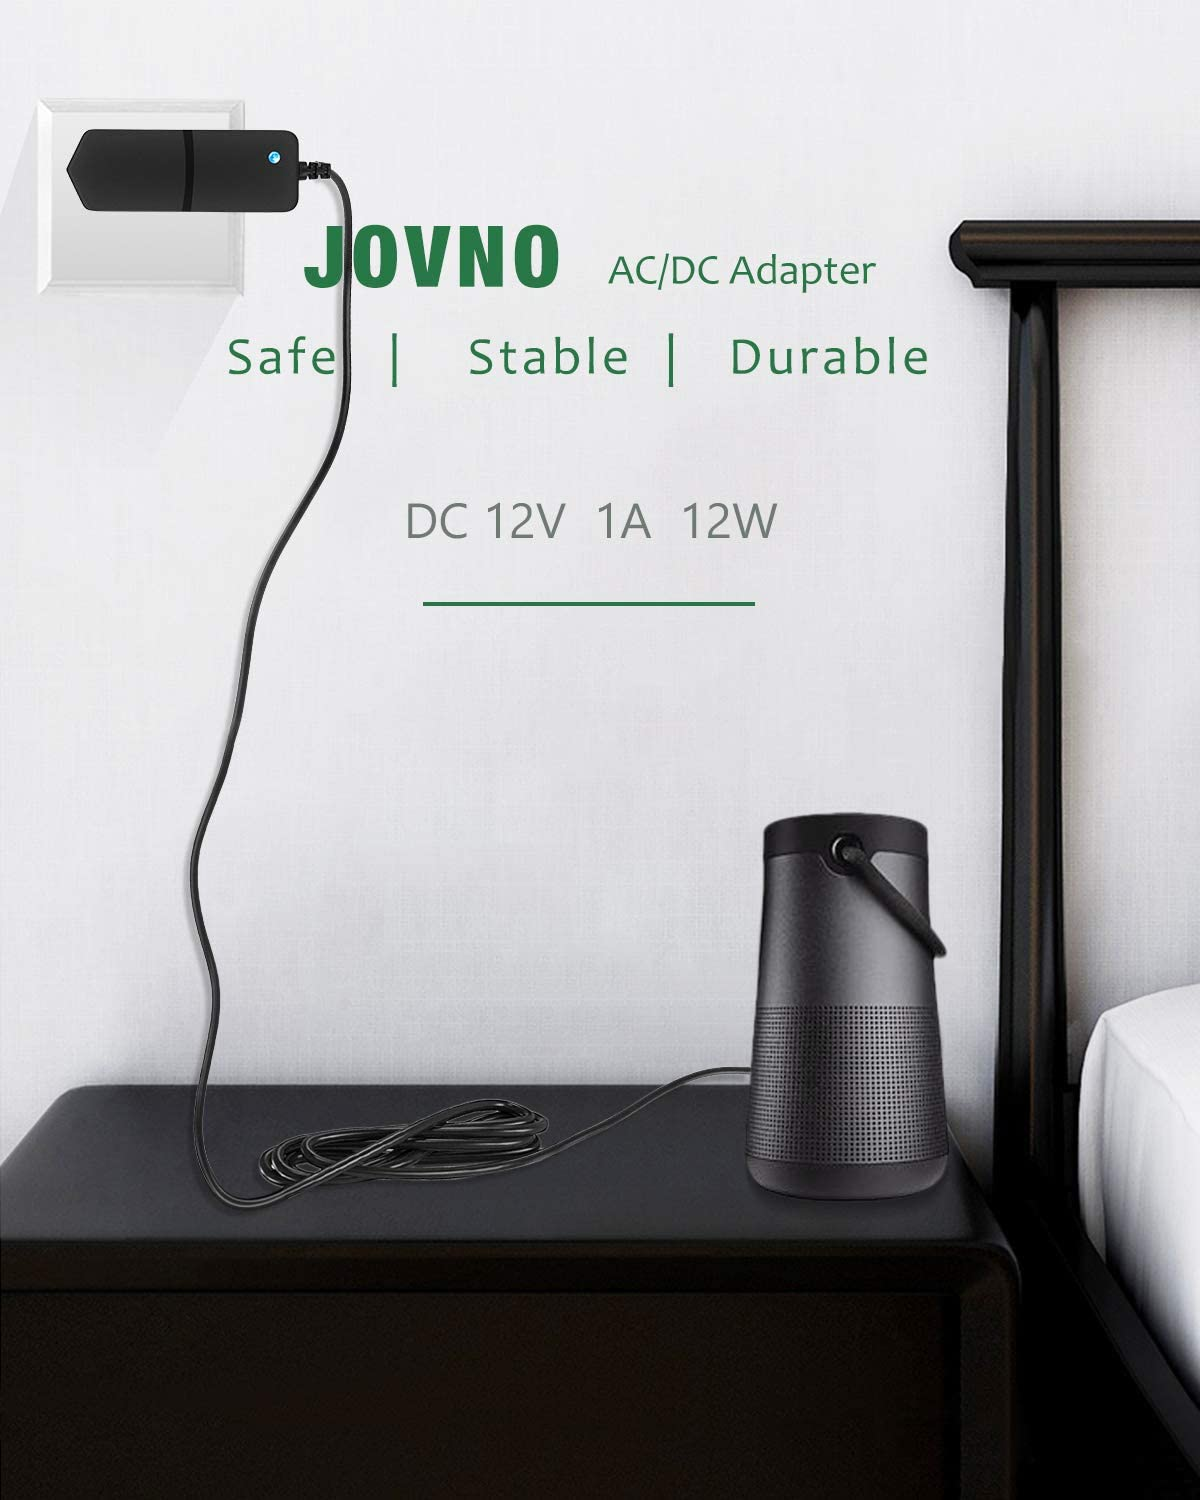 JOVNO 12V 1A Power Supply Adapter 100-240V AC to DC 12volt 12W 1amp 800mA 500mA Power Converter Transformer with 5.5x2.5mm Tip for WiFi IP Home Camera DVR NVR CCTV Security System Wireless Router